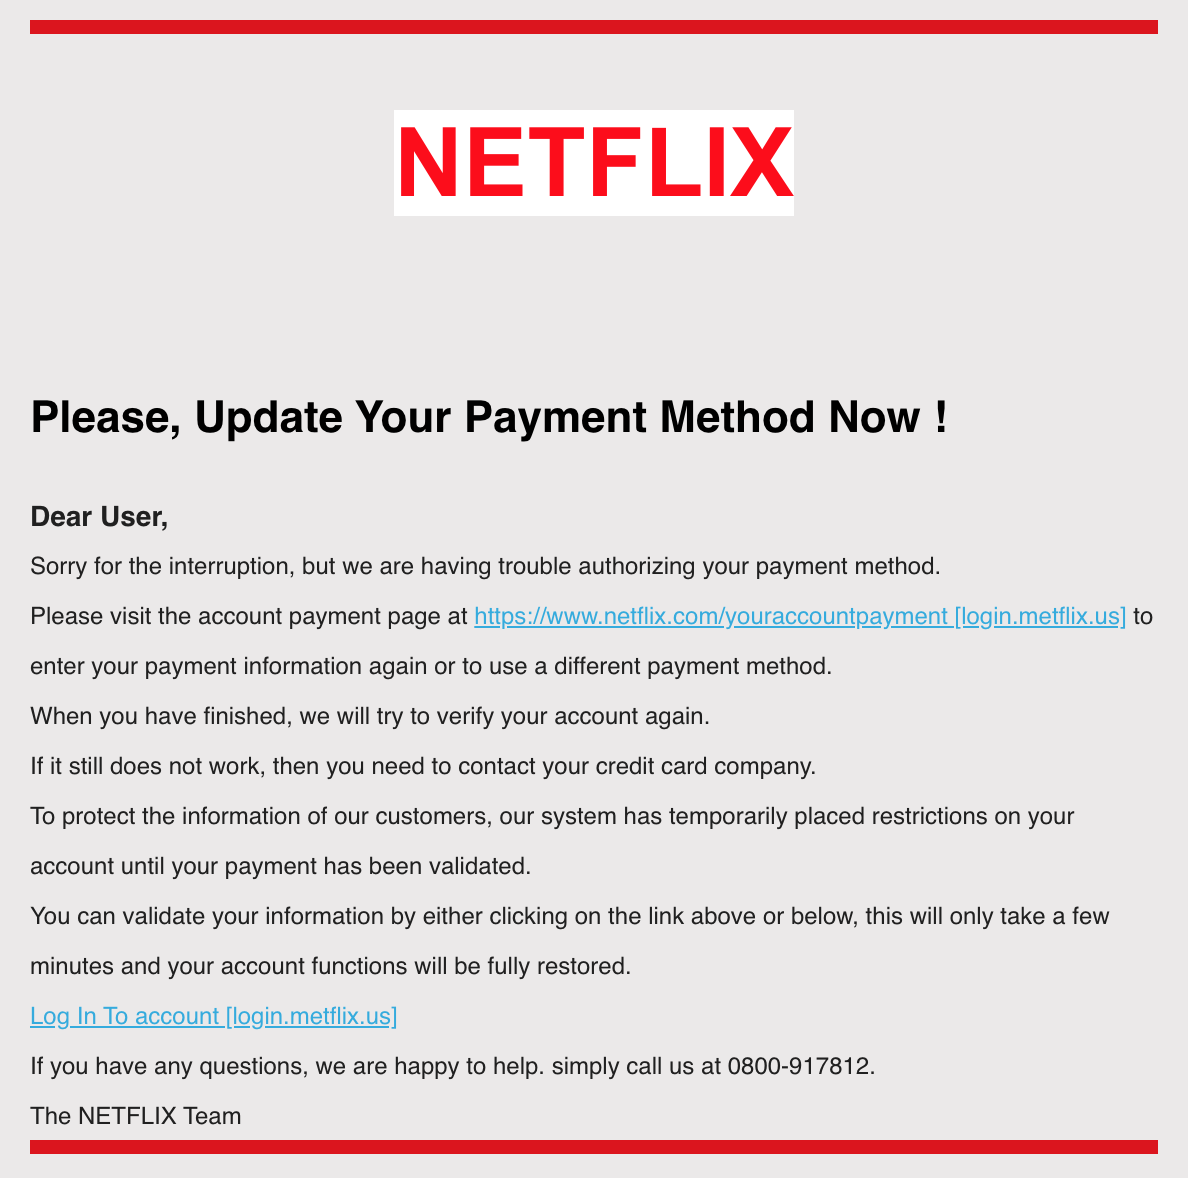 Police Warning Of Netflix Email Scam About Updating Payment Details